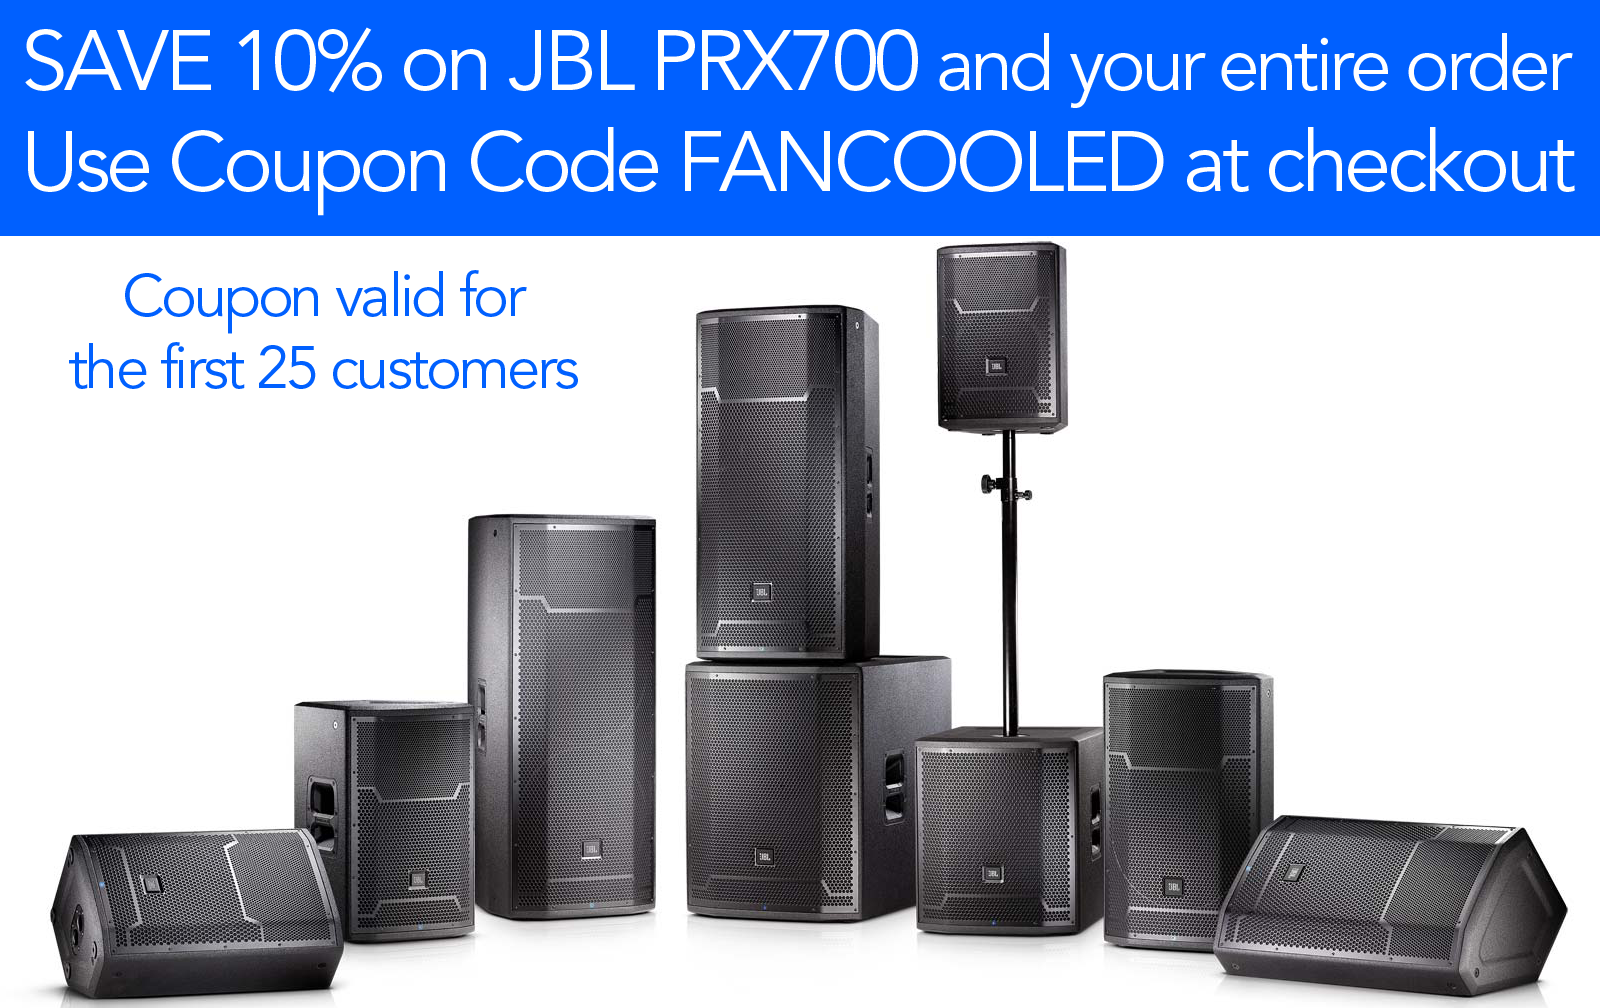 jbl_prx700_family-with-coupon-code-full-size-good-for-entire-purchase